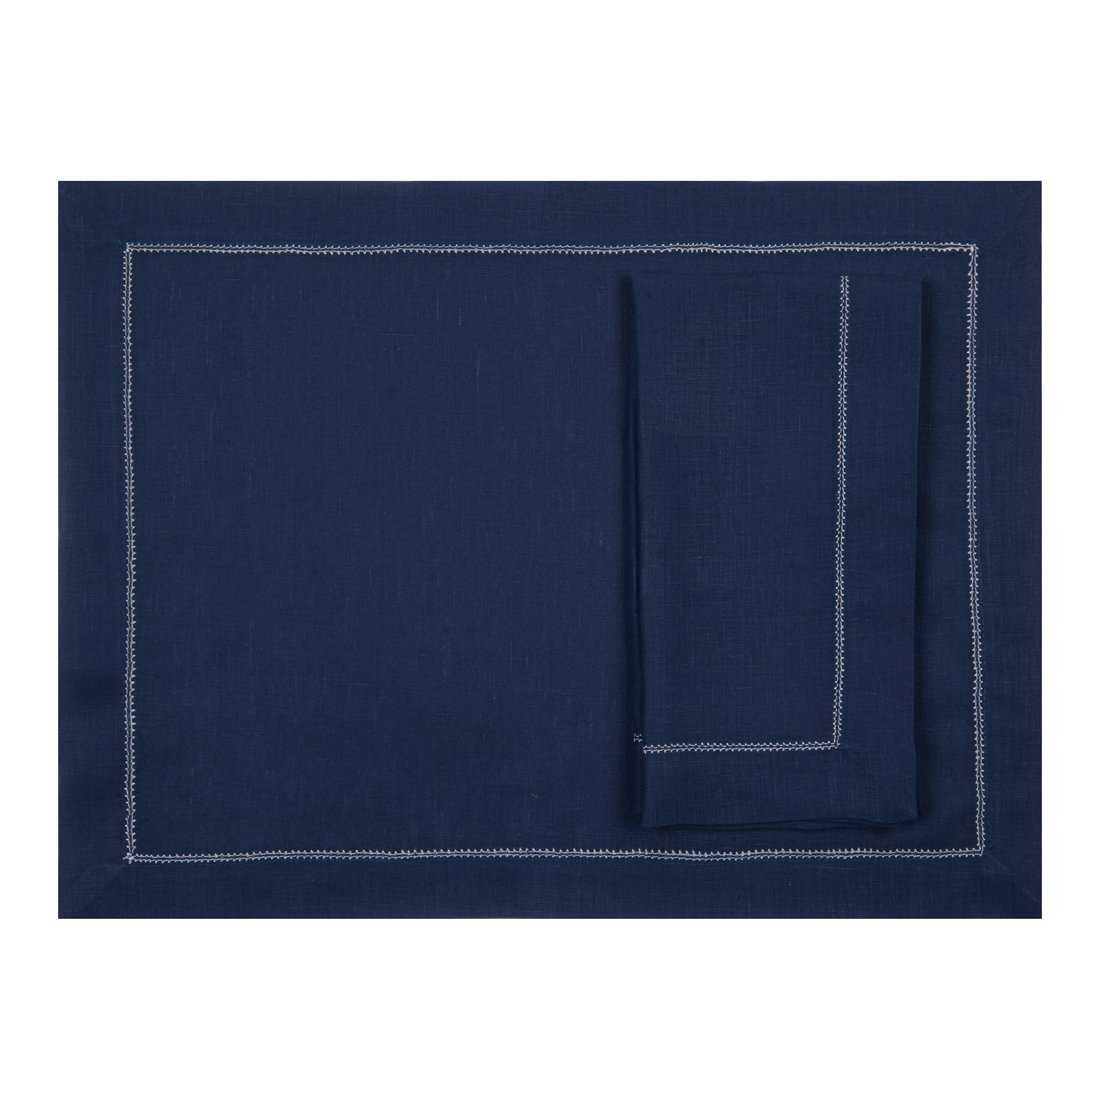 Navy Blue Pure Linen Placemat With Ivory Contrast Hemstitch (Set of Six) by Huddleson Linens (Image #1)